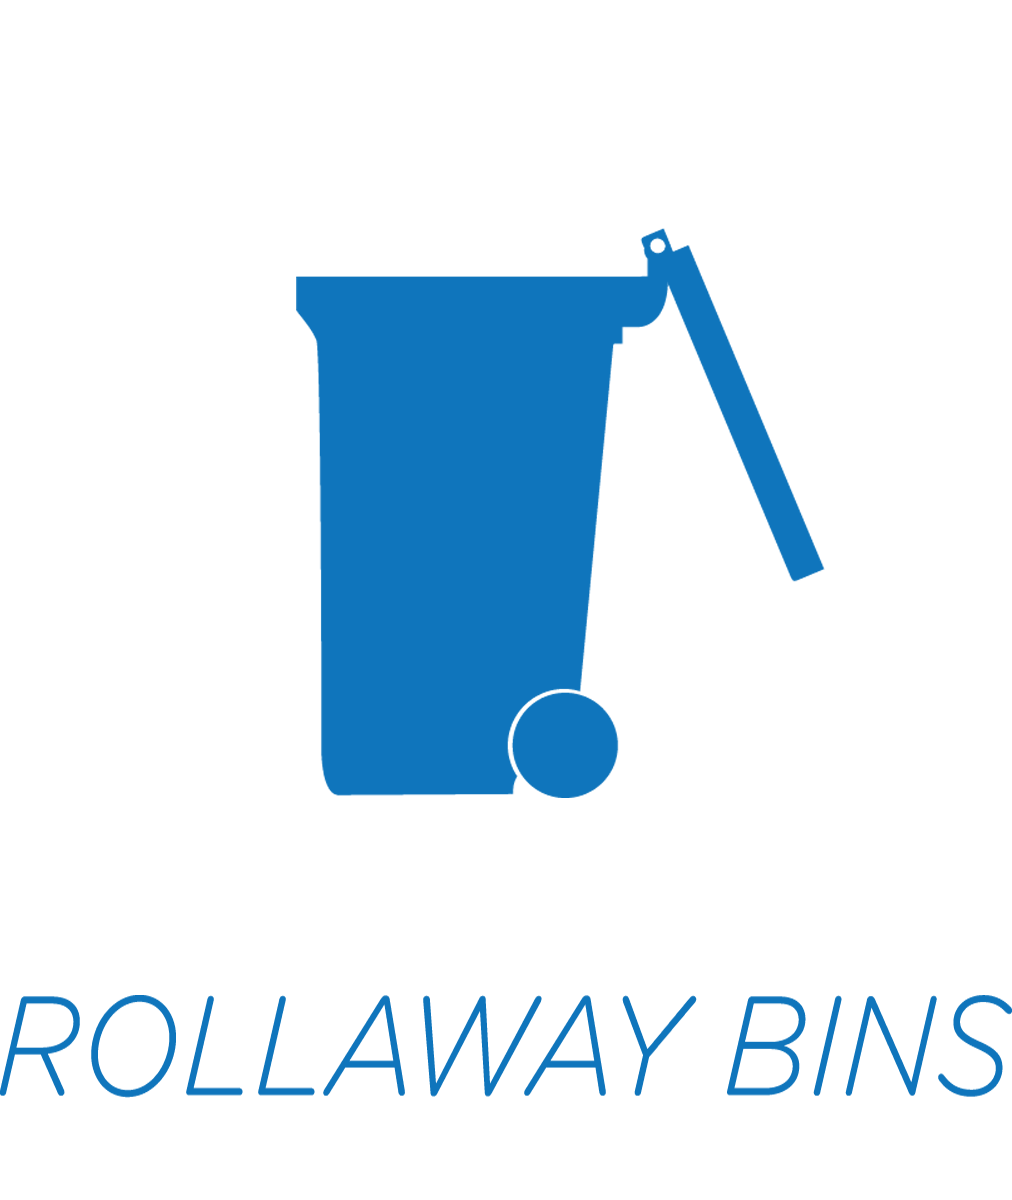 Rollout_Bins